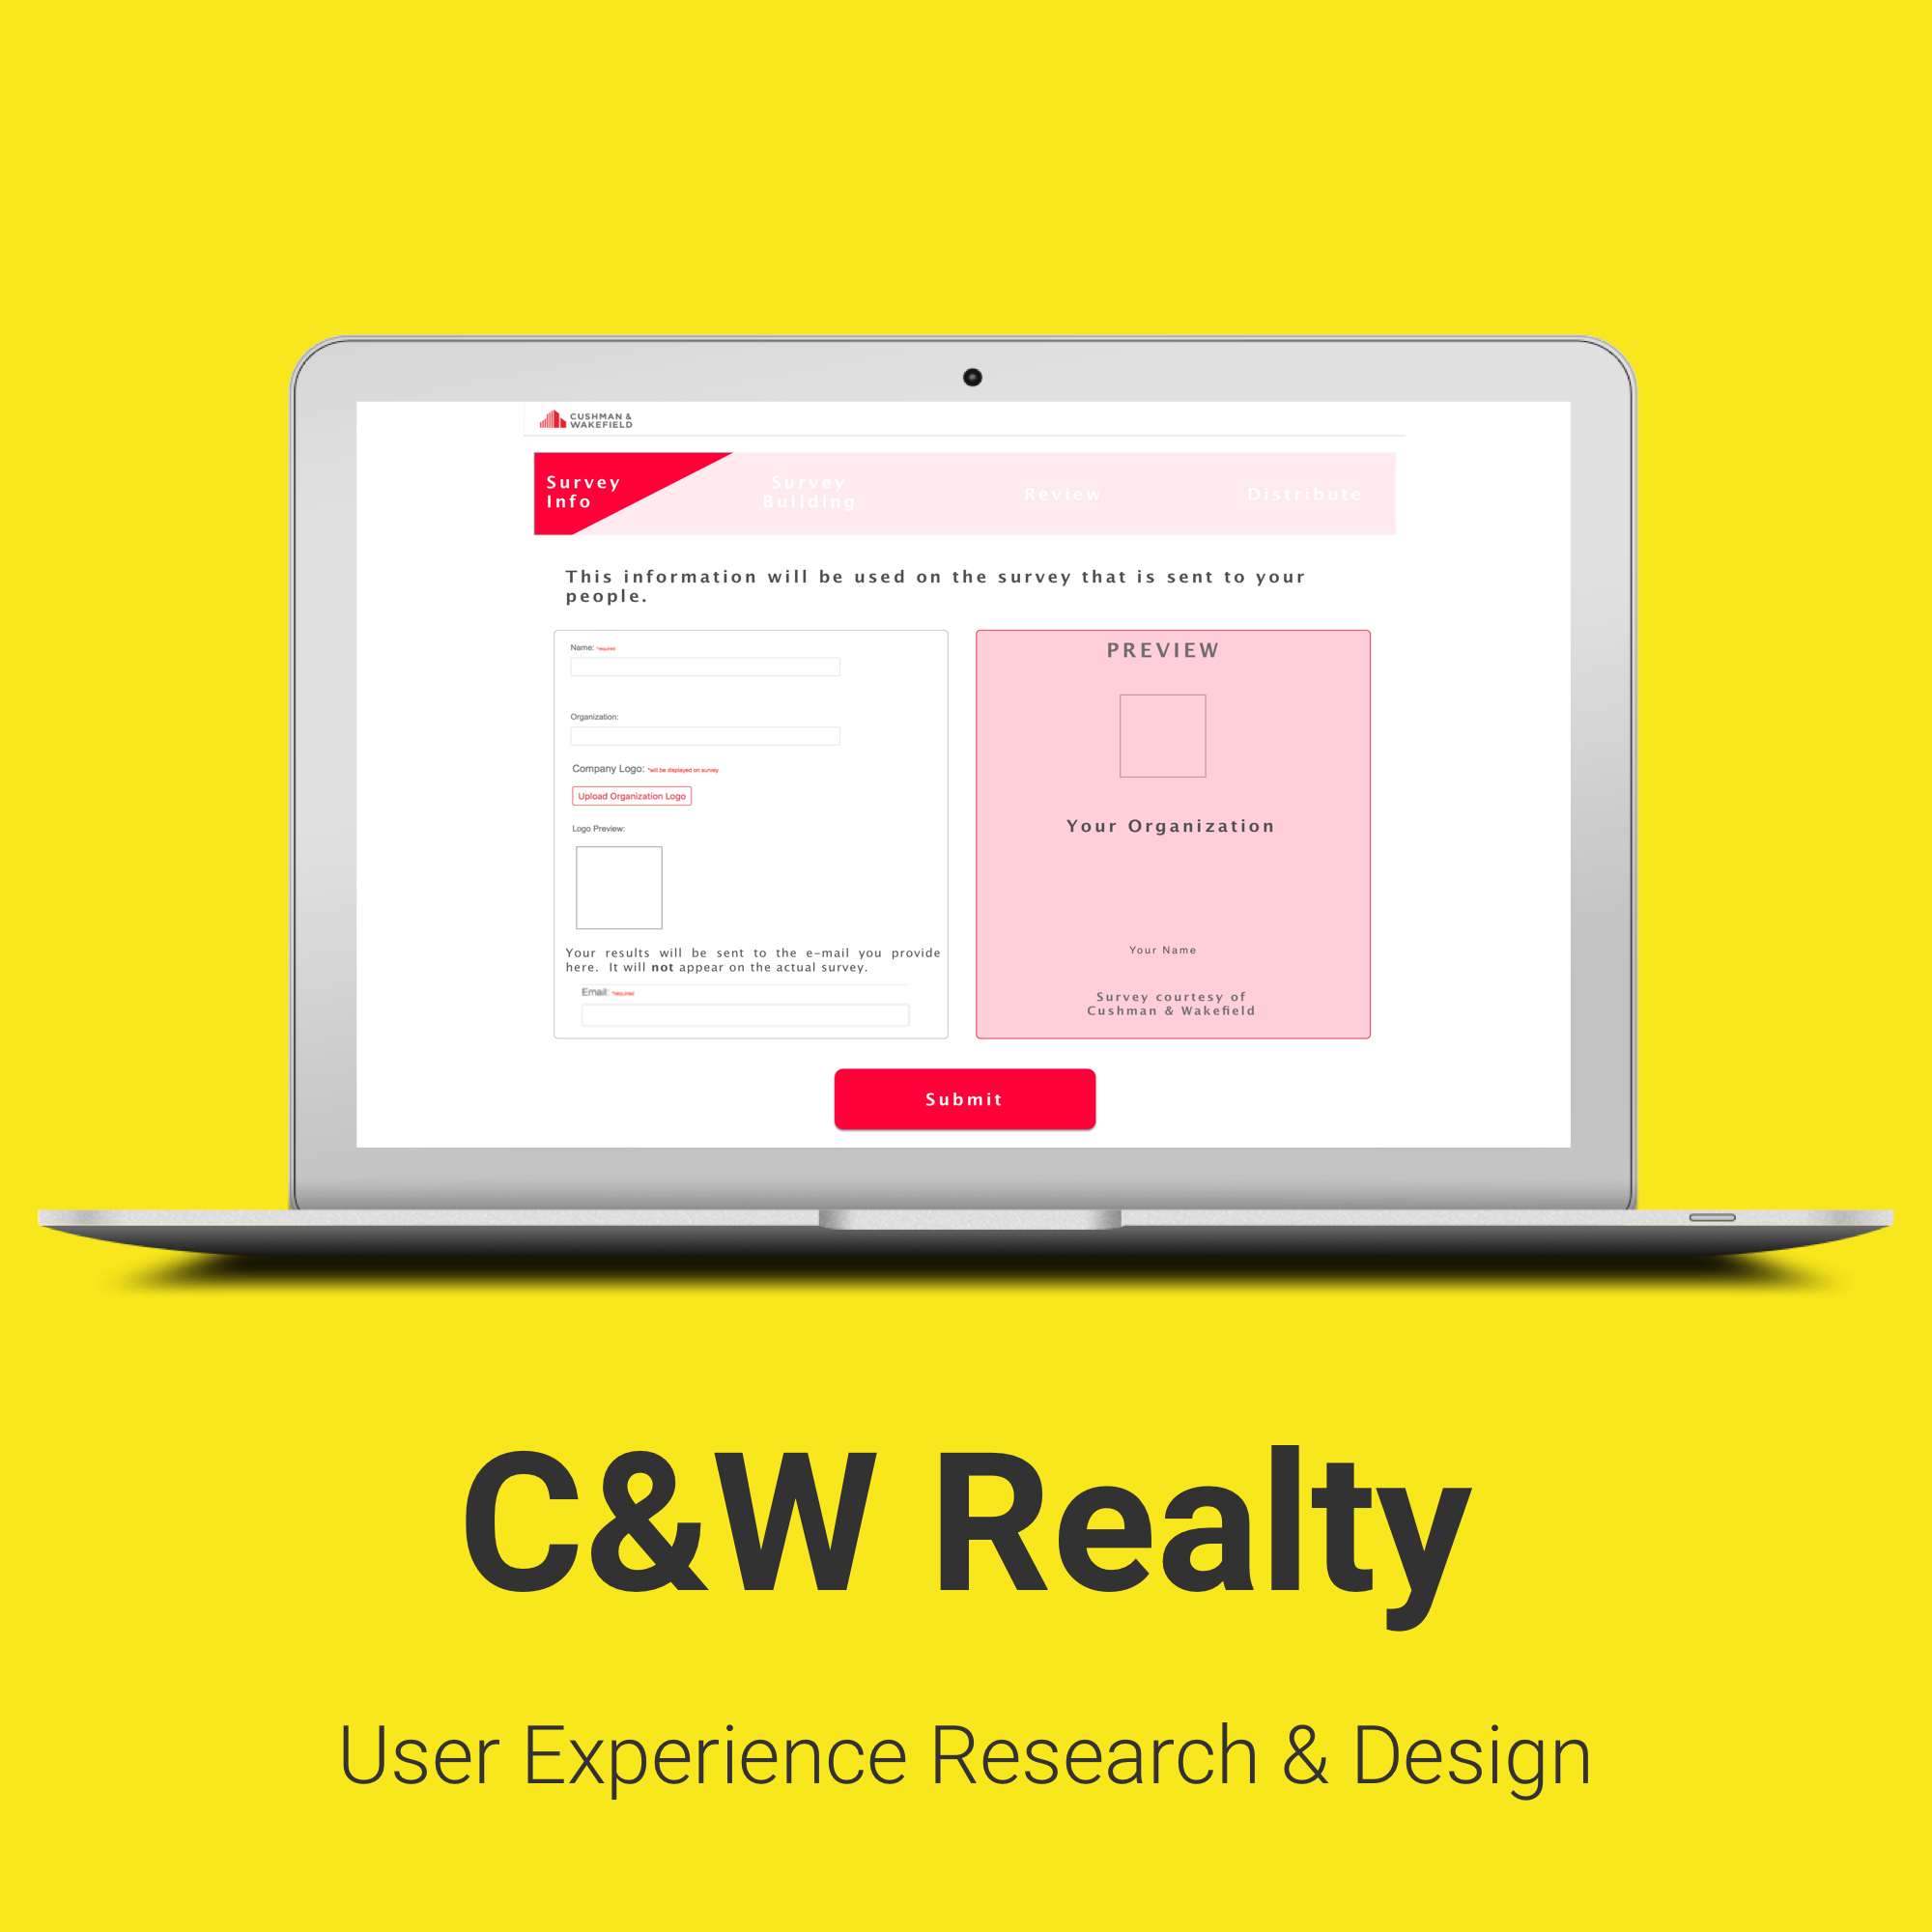 Cushman and wakefield realty user experience research and design button.png